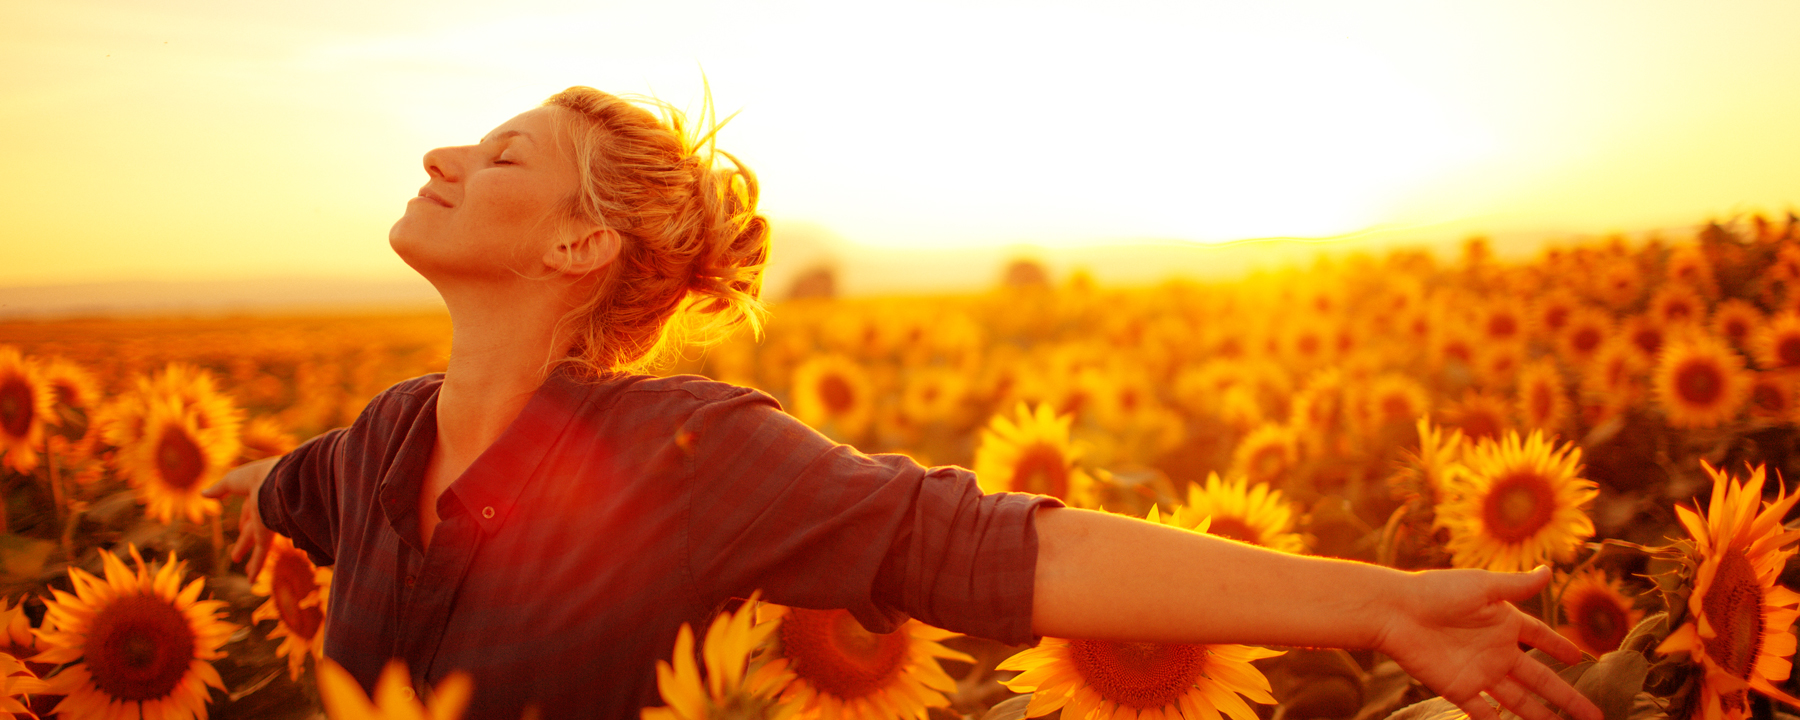 image of woman standing with arms open in a sunflower field